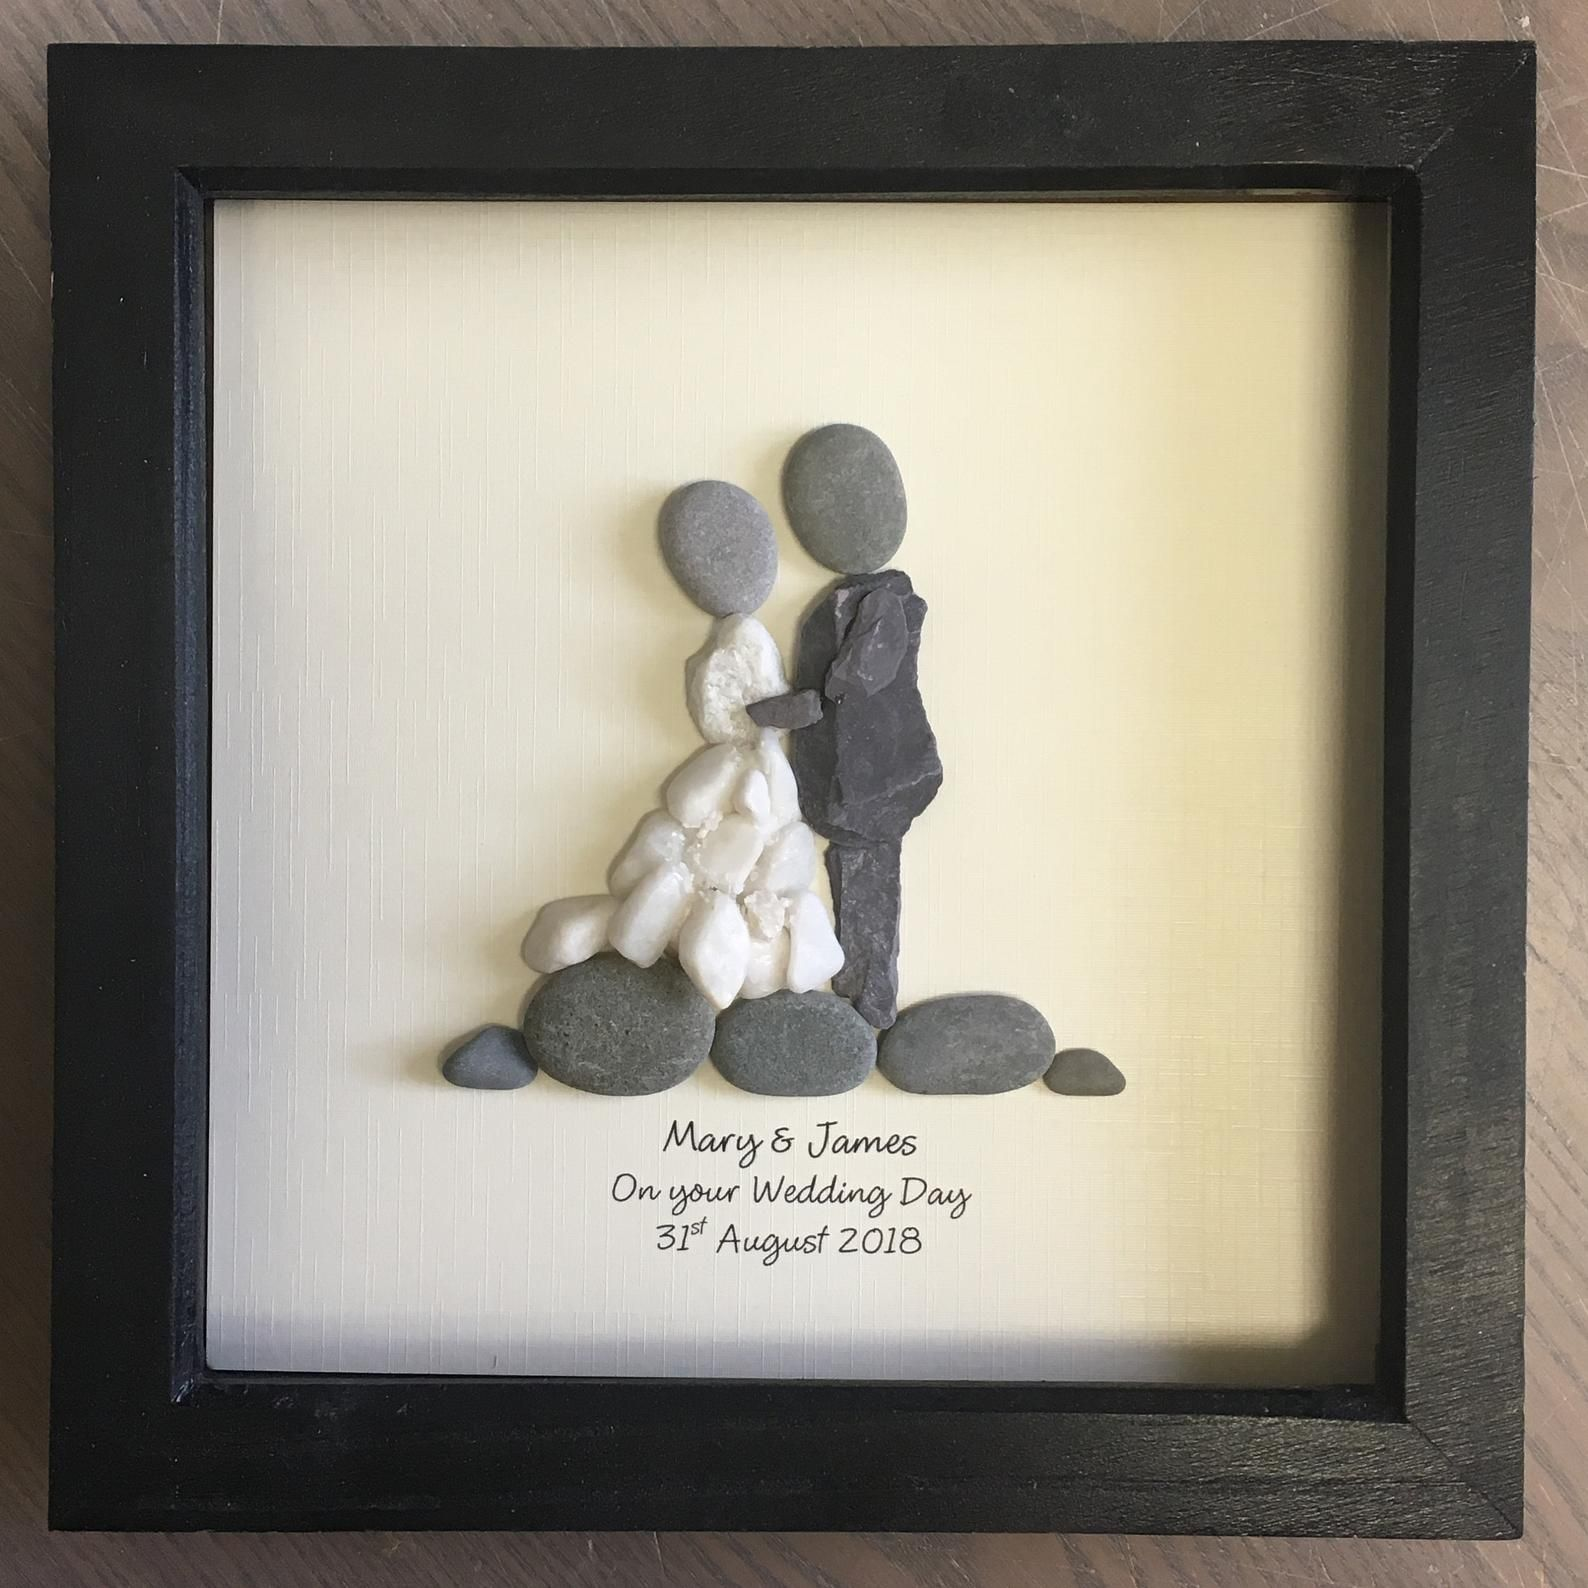 Wedding Gift Pebble Art Personalised Unique Pebble Picture Framed Rustic Home Decor Stone Wall Art Ideal For Beach Wedding Theme 23cm Stone Wall Art Personalised Gifts Unique Pebble Art